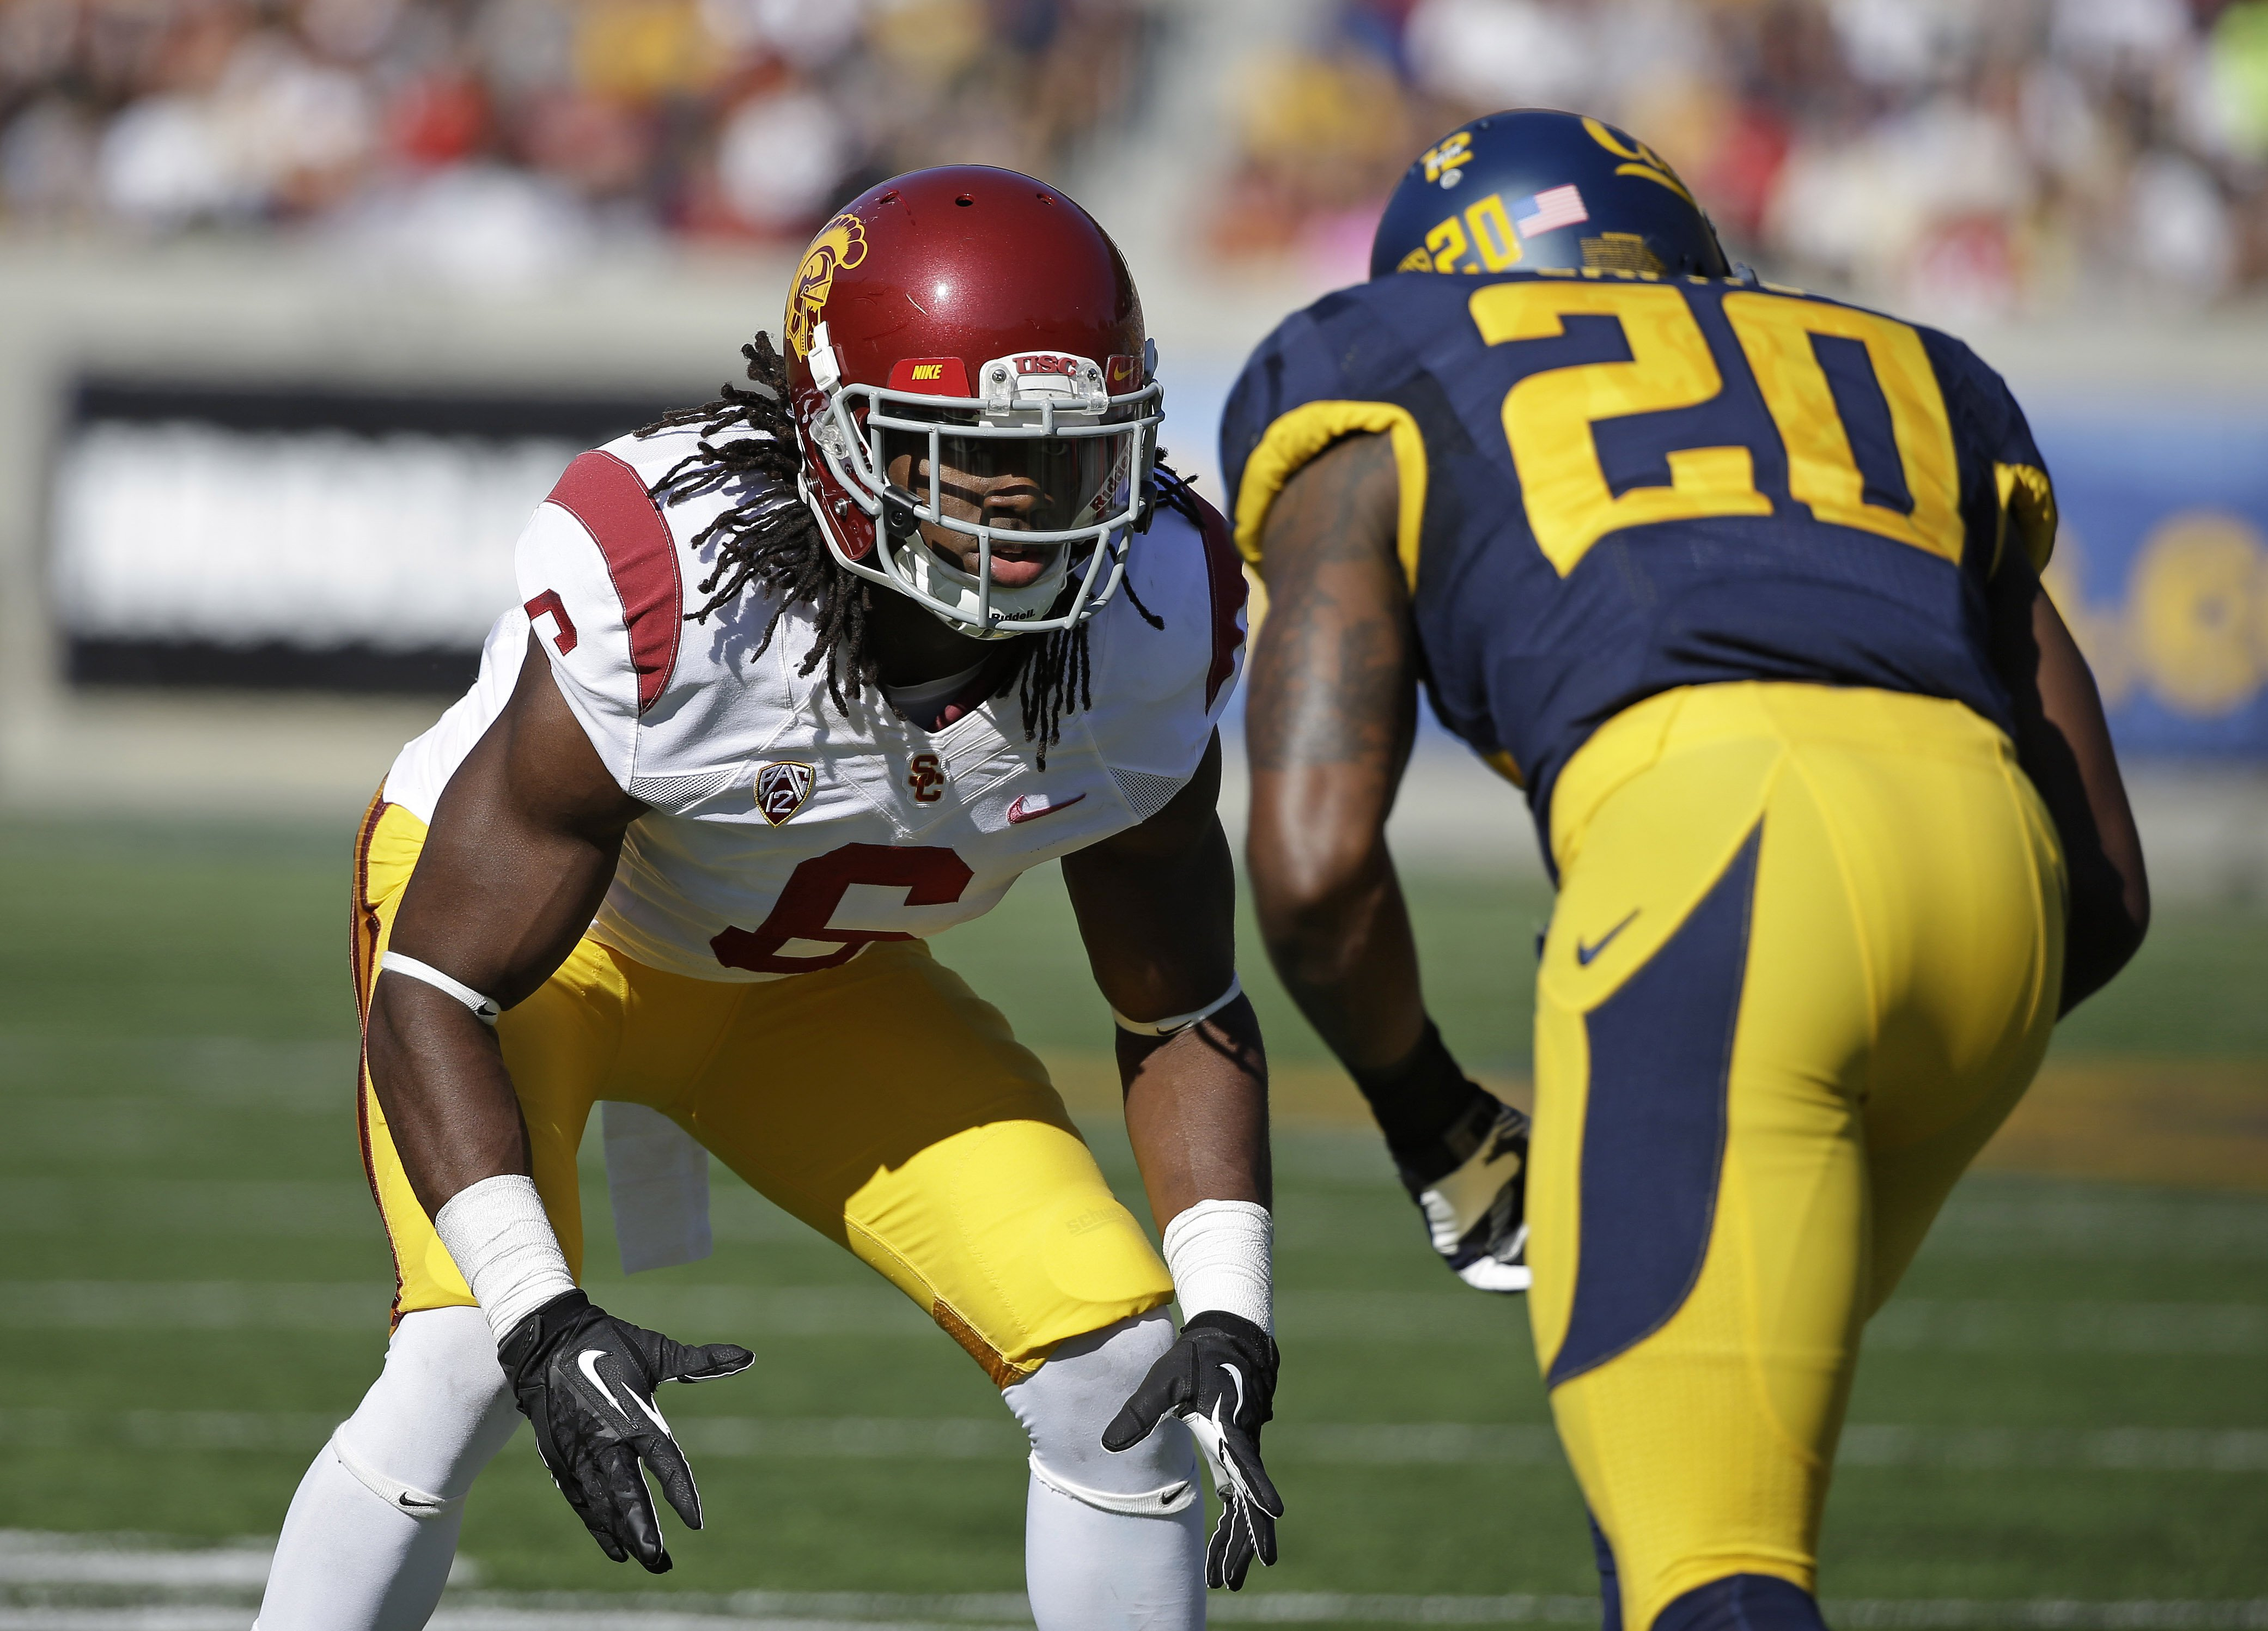 Southern California cornerback Josh Shaw lines up against California defensive back Isaac Lapite during the first quarter of a NCAA college football game in Berkeley, Calif.